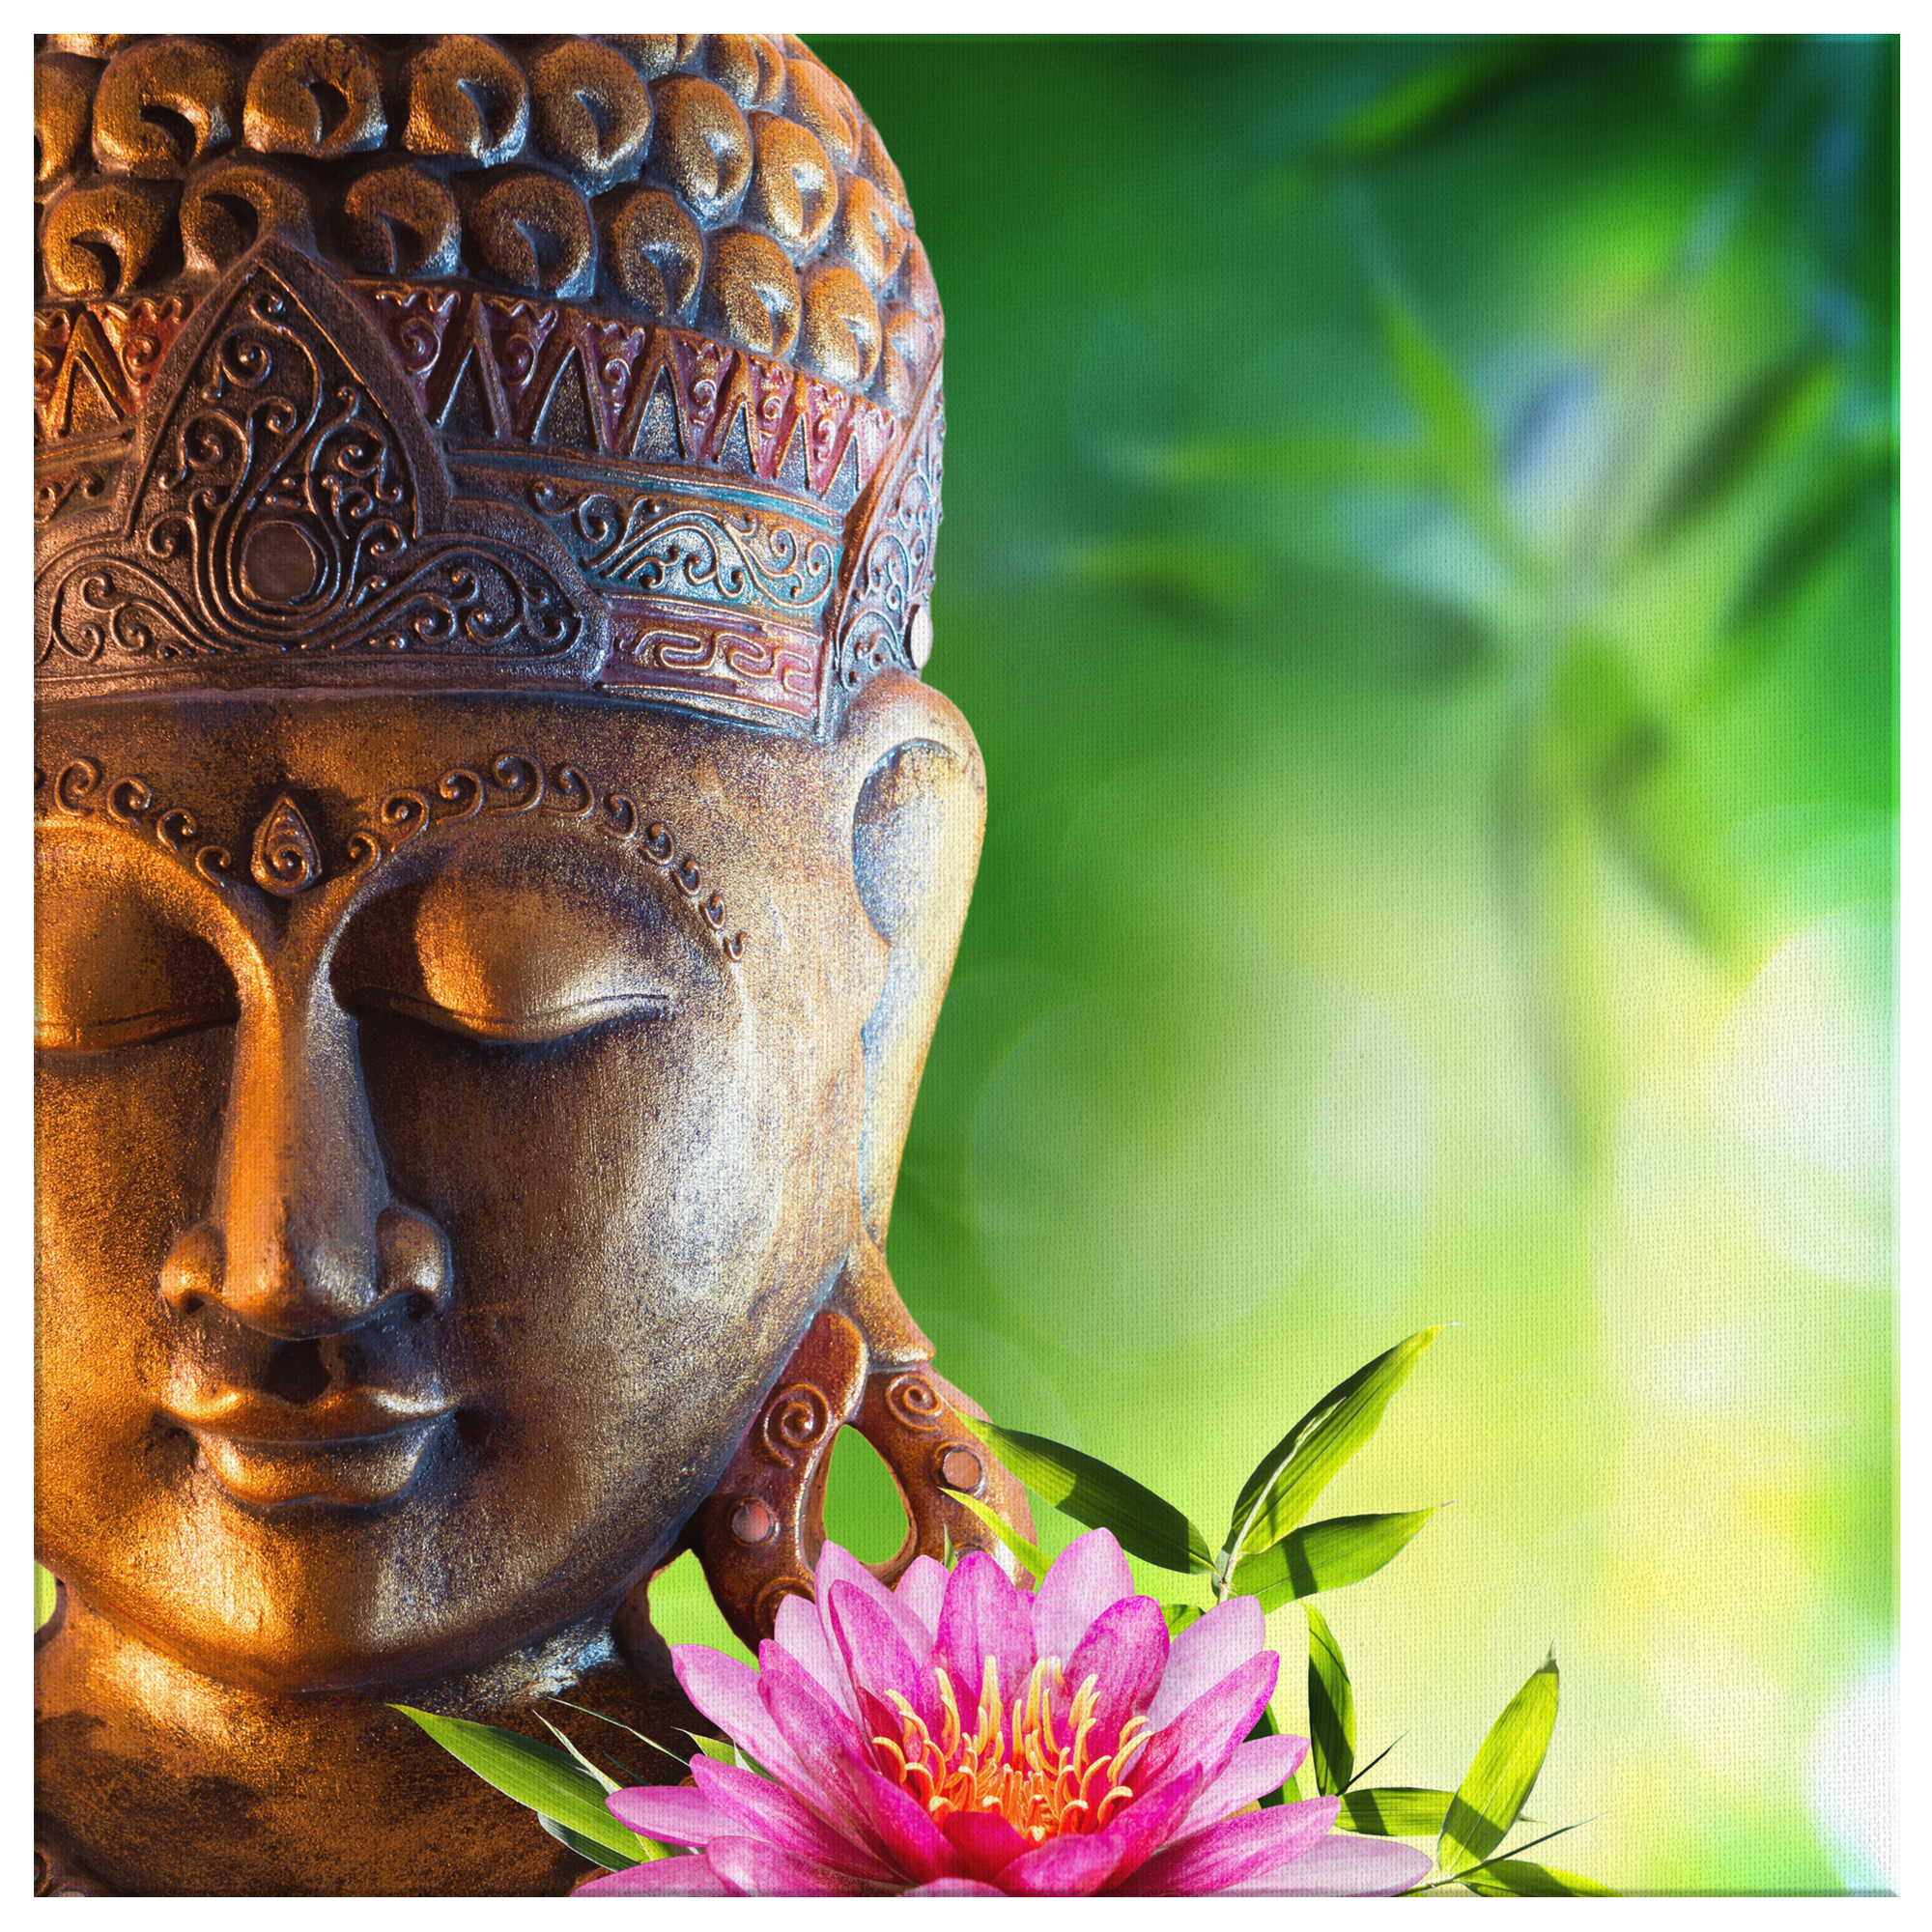 Ancient Buddha Statue with Pink Lily Flower